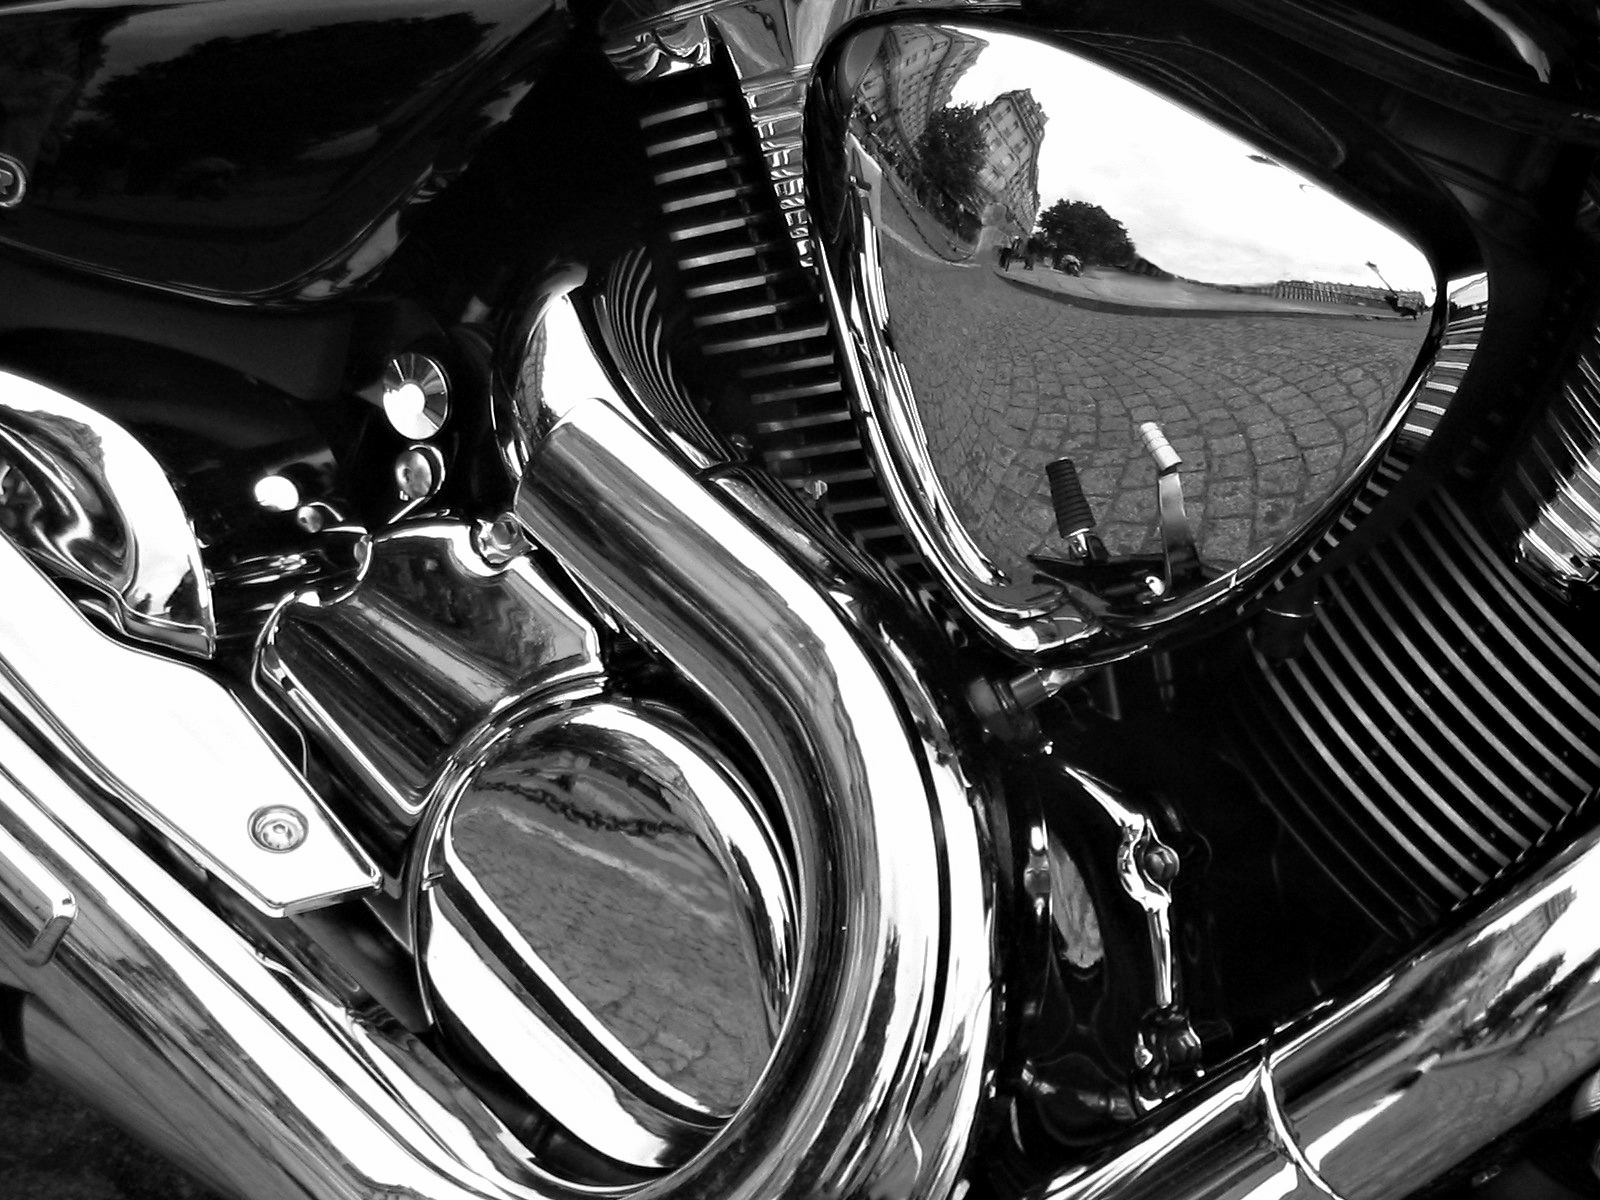 04-14-2019 Motorcycle_Reflections_bw_edit.jpg